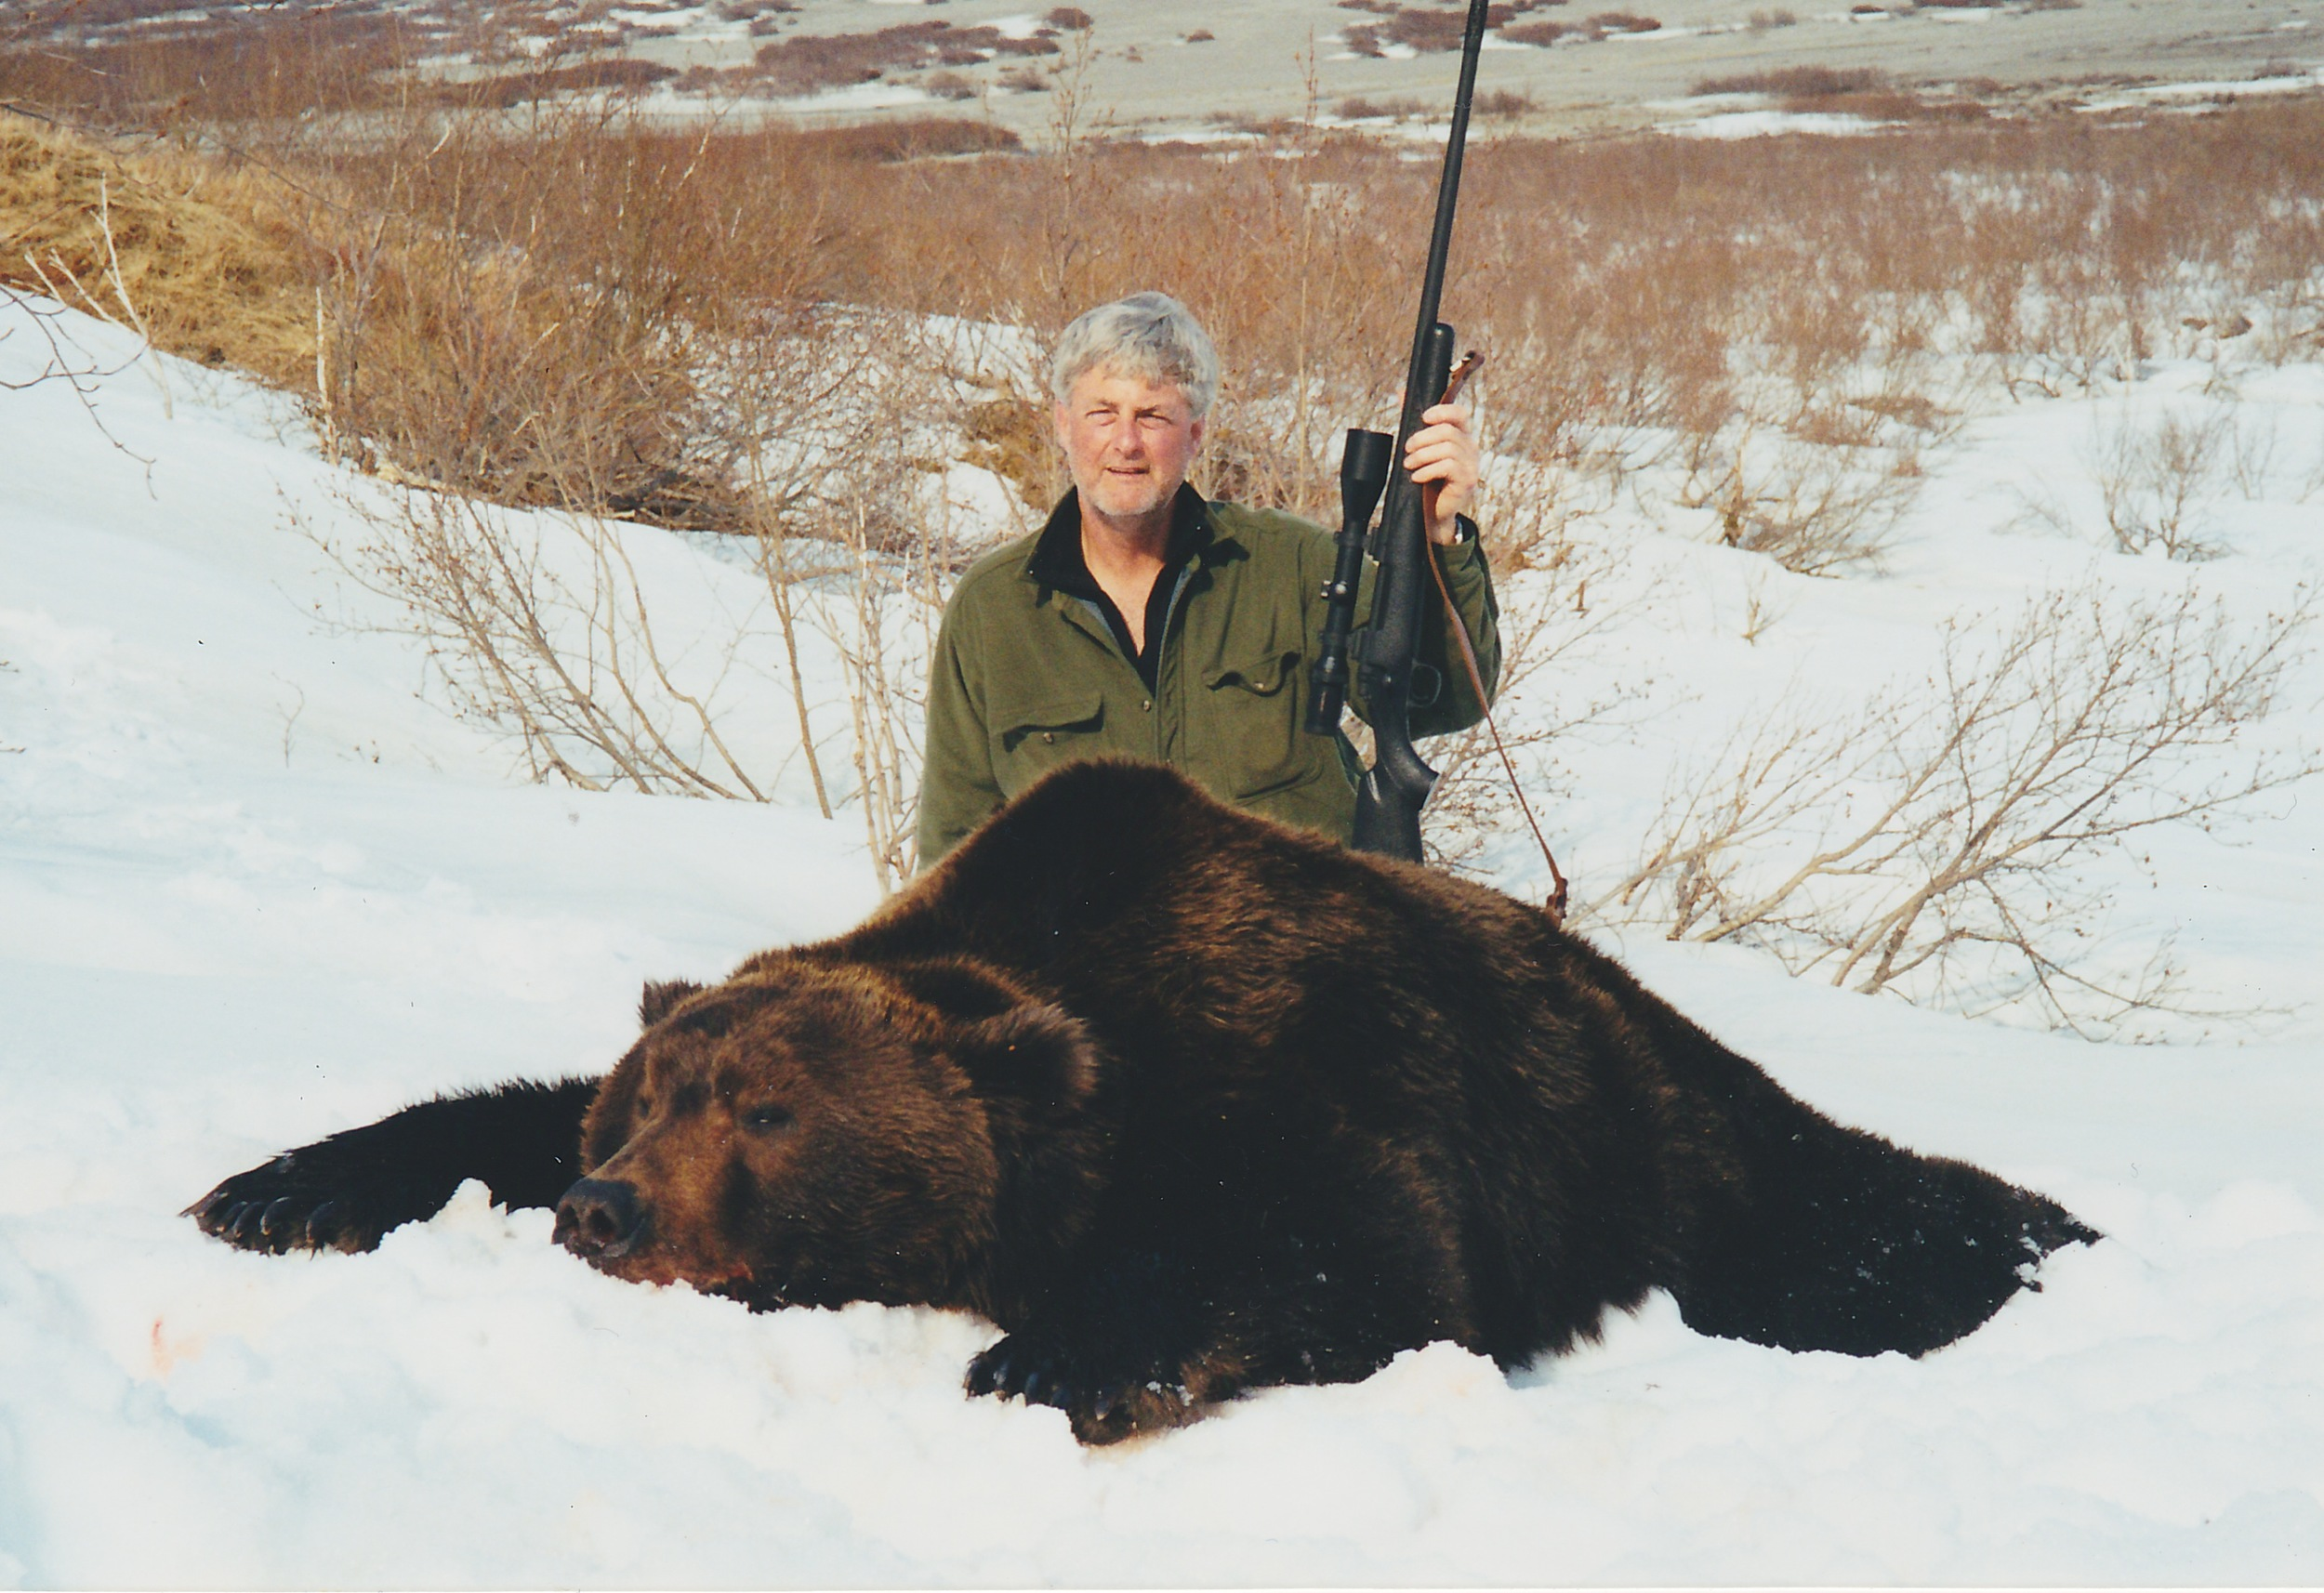 Tom with his beautiful 10' brown bear